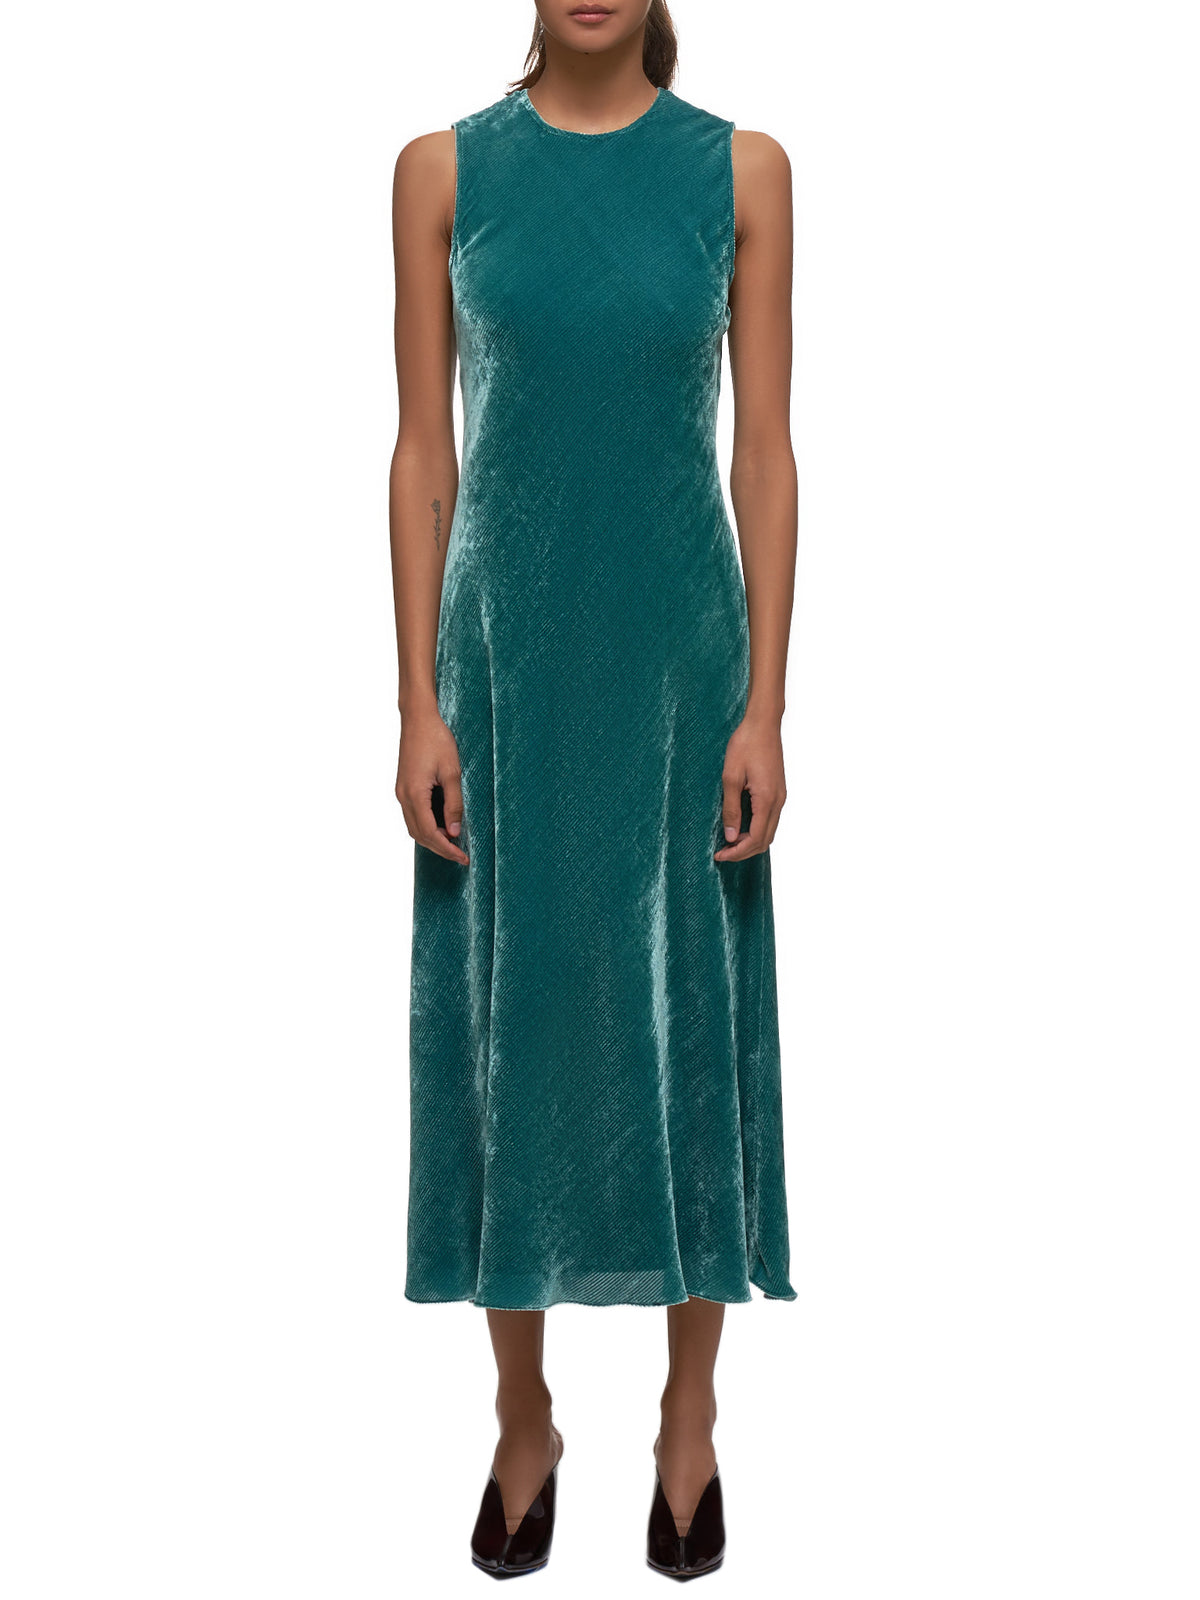 Viv Velvet Cord Sleeveless Dress (15FC5232-GREEN)